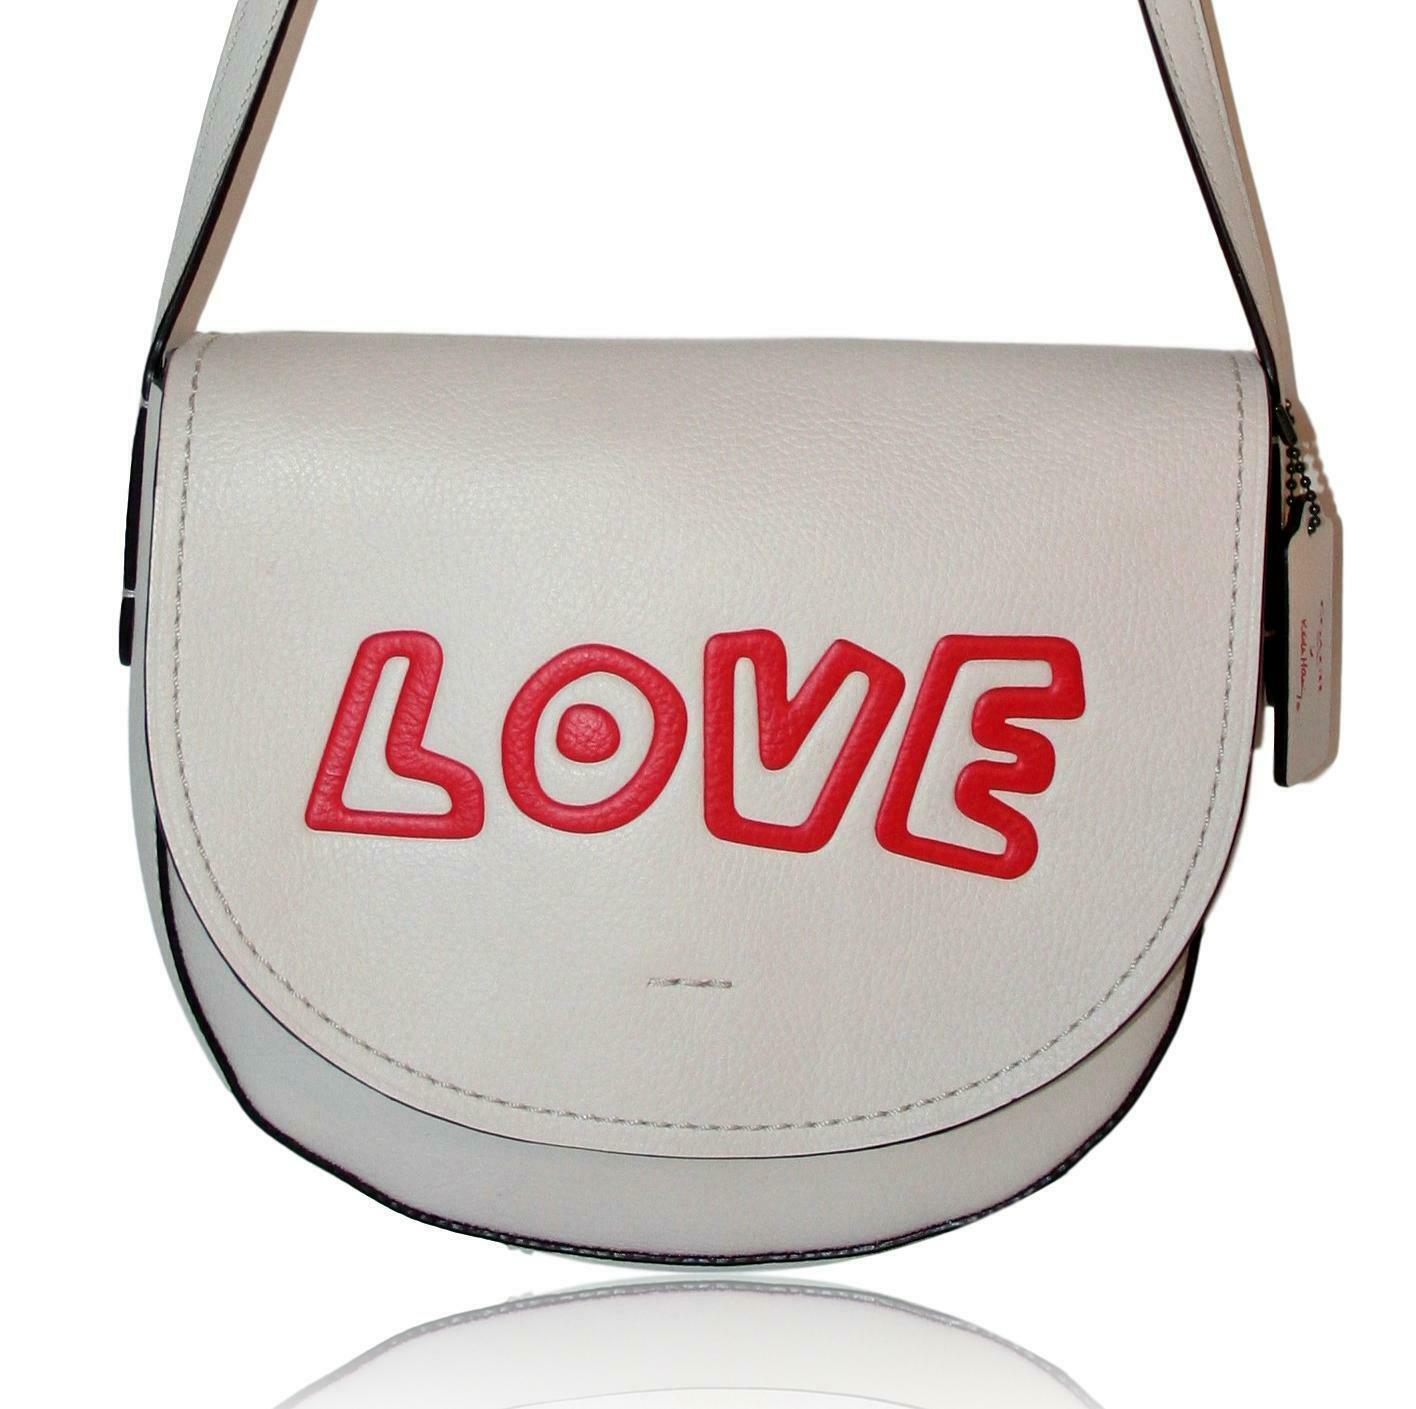 COACH x Keith Haring Leather Shoulder Bag LOVE WHITE  New!